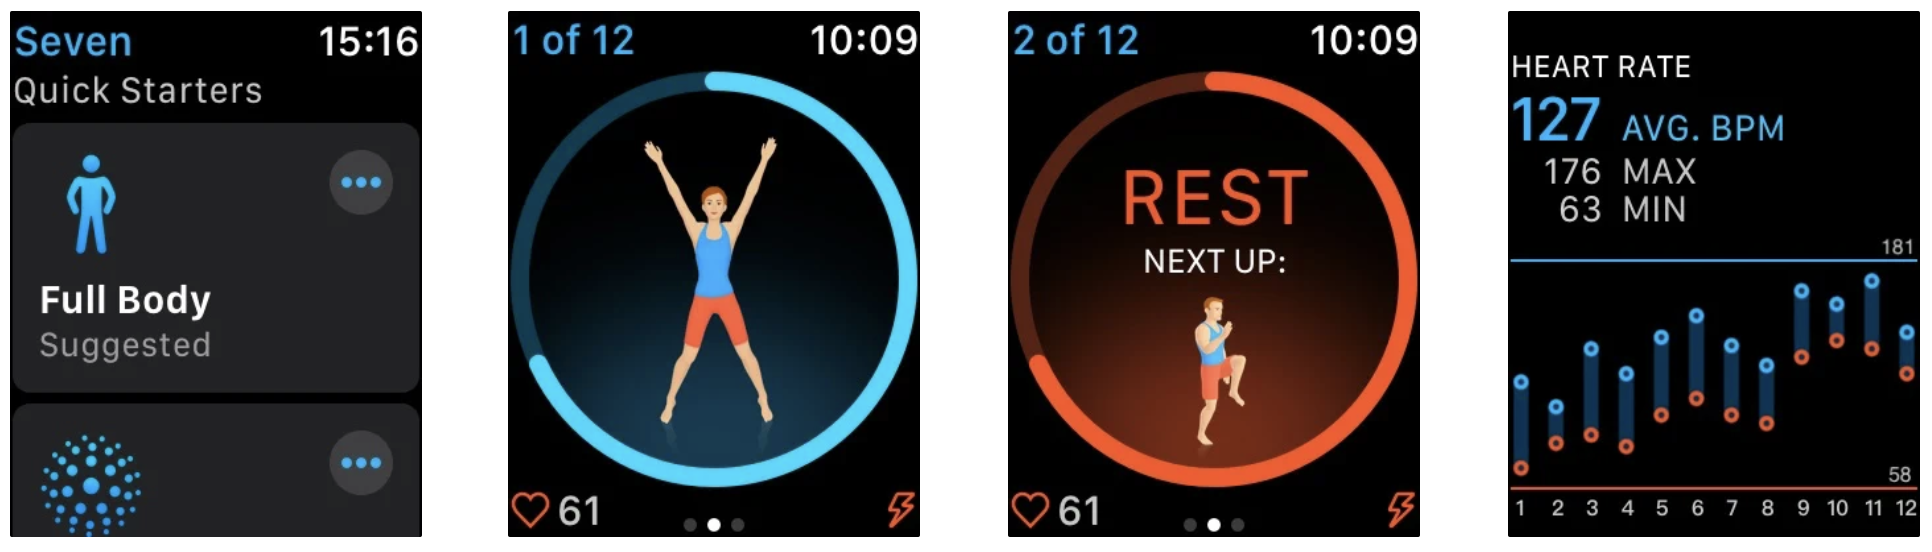 seven 7 minute workout app